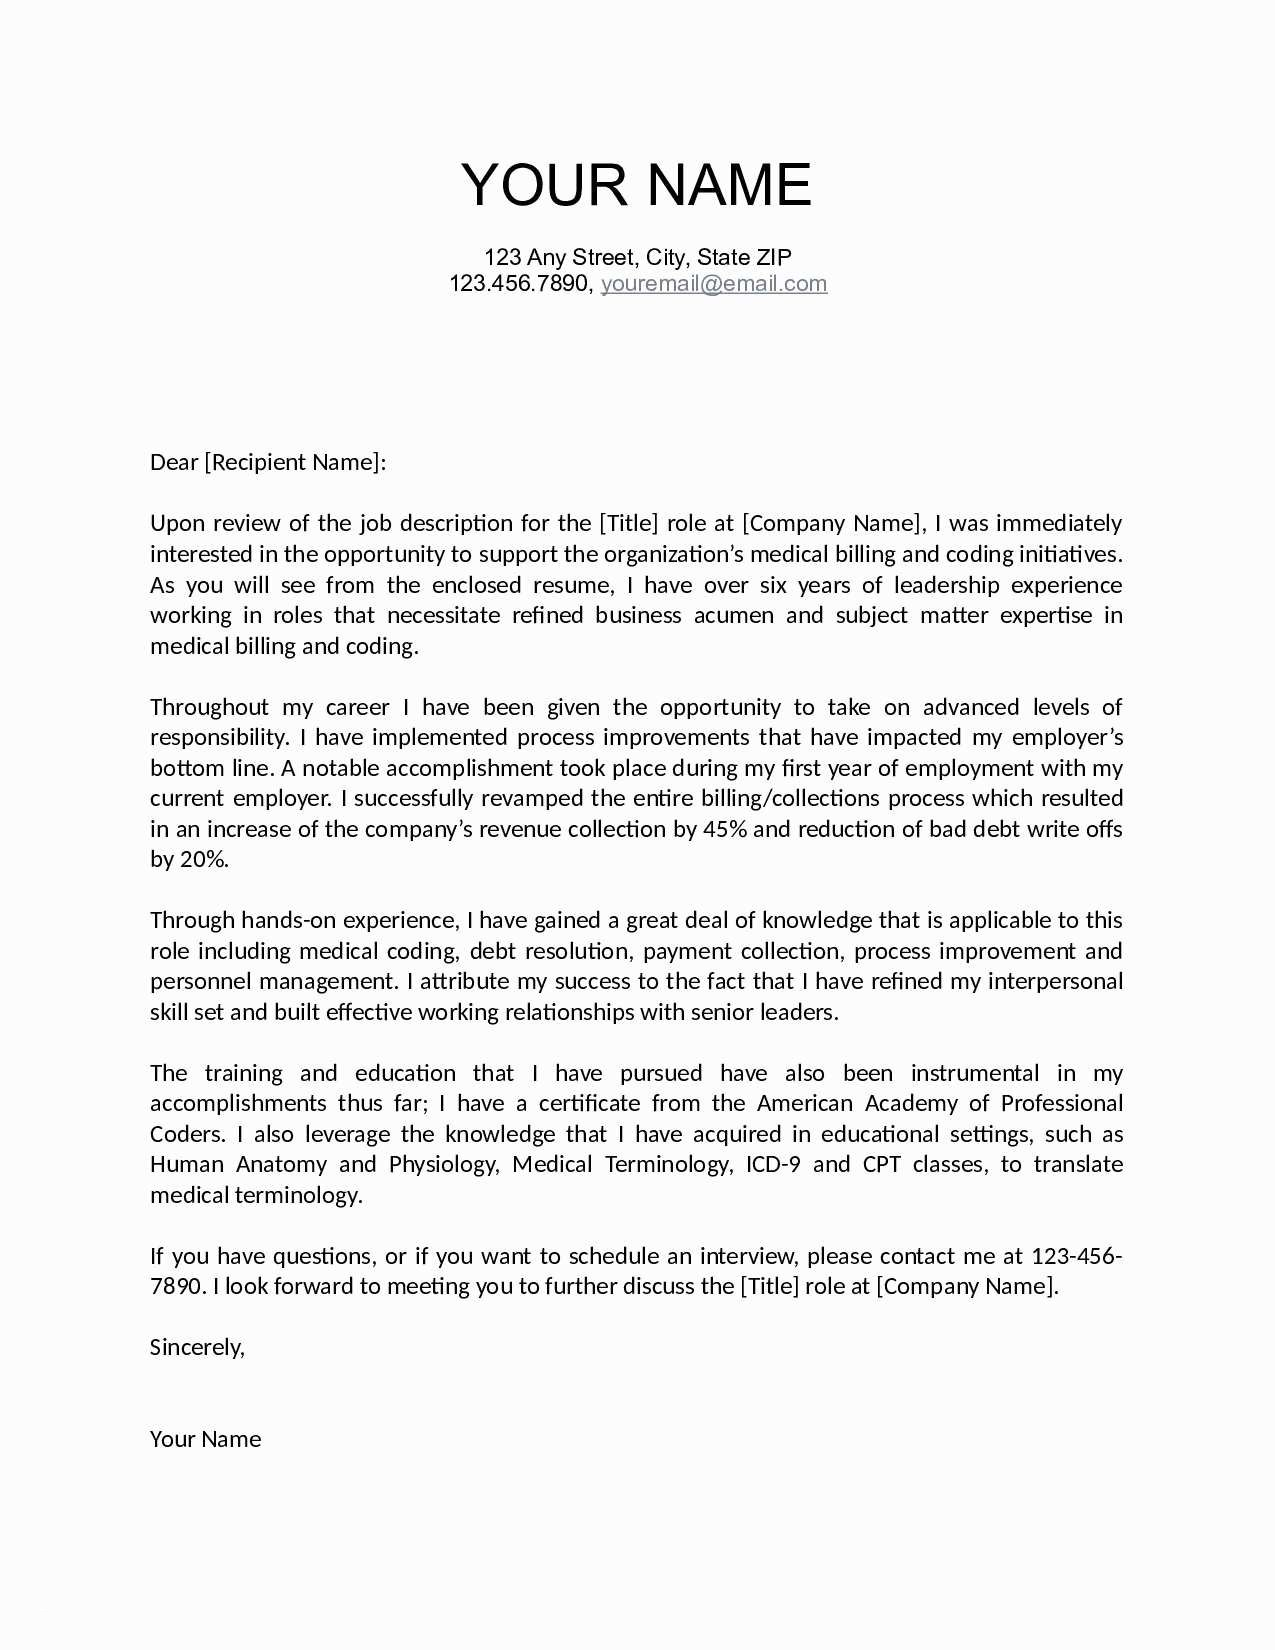 Cover Letter for Teaching Job Template Examples | Letter Templates